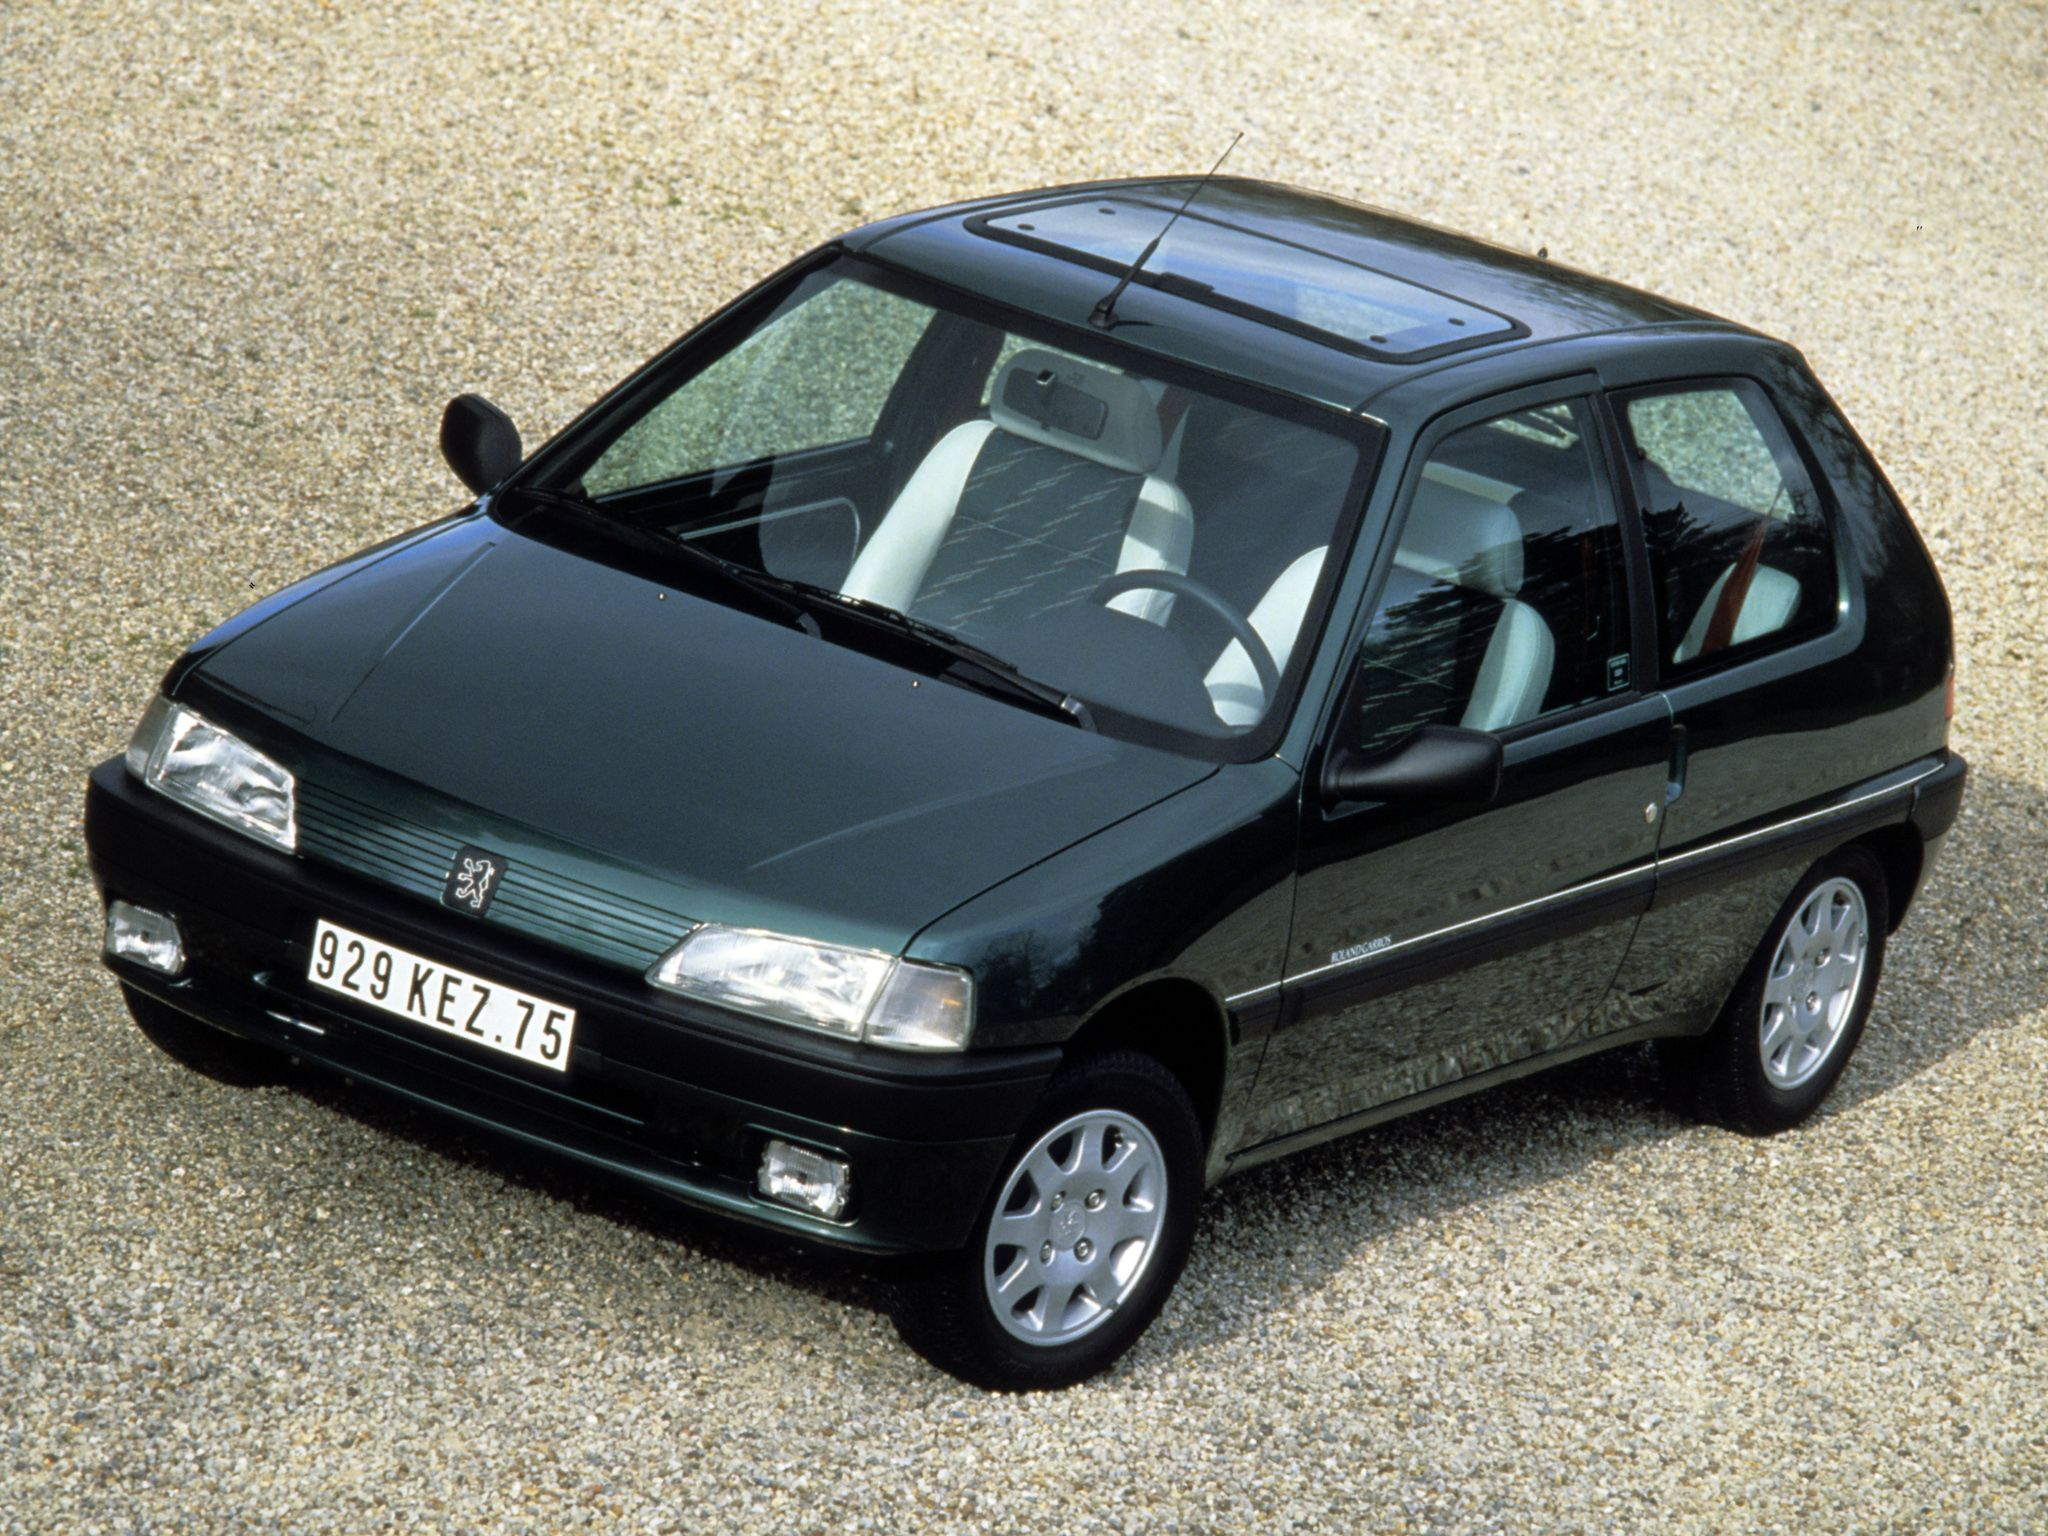 peugeot 106 roland garros 3 door 39 1993 traumautos peugeot autos und camionetas. Black Bedroom Furniture Sets. Home Design Ideas